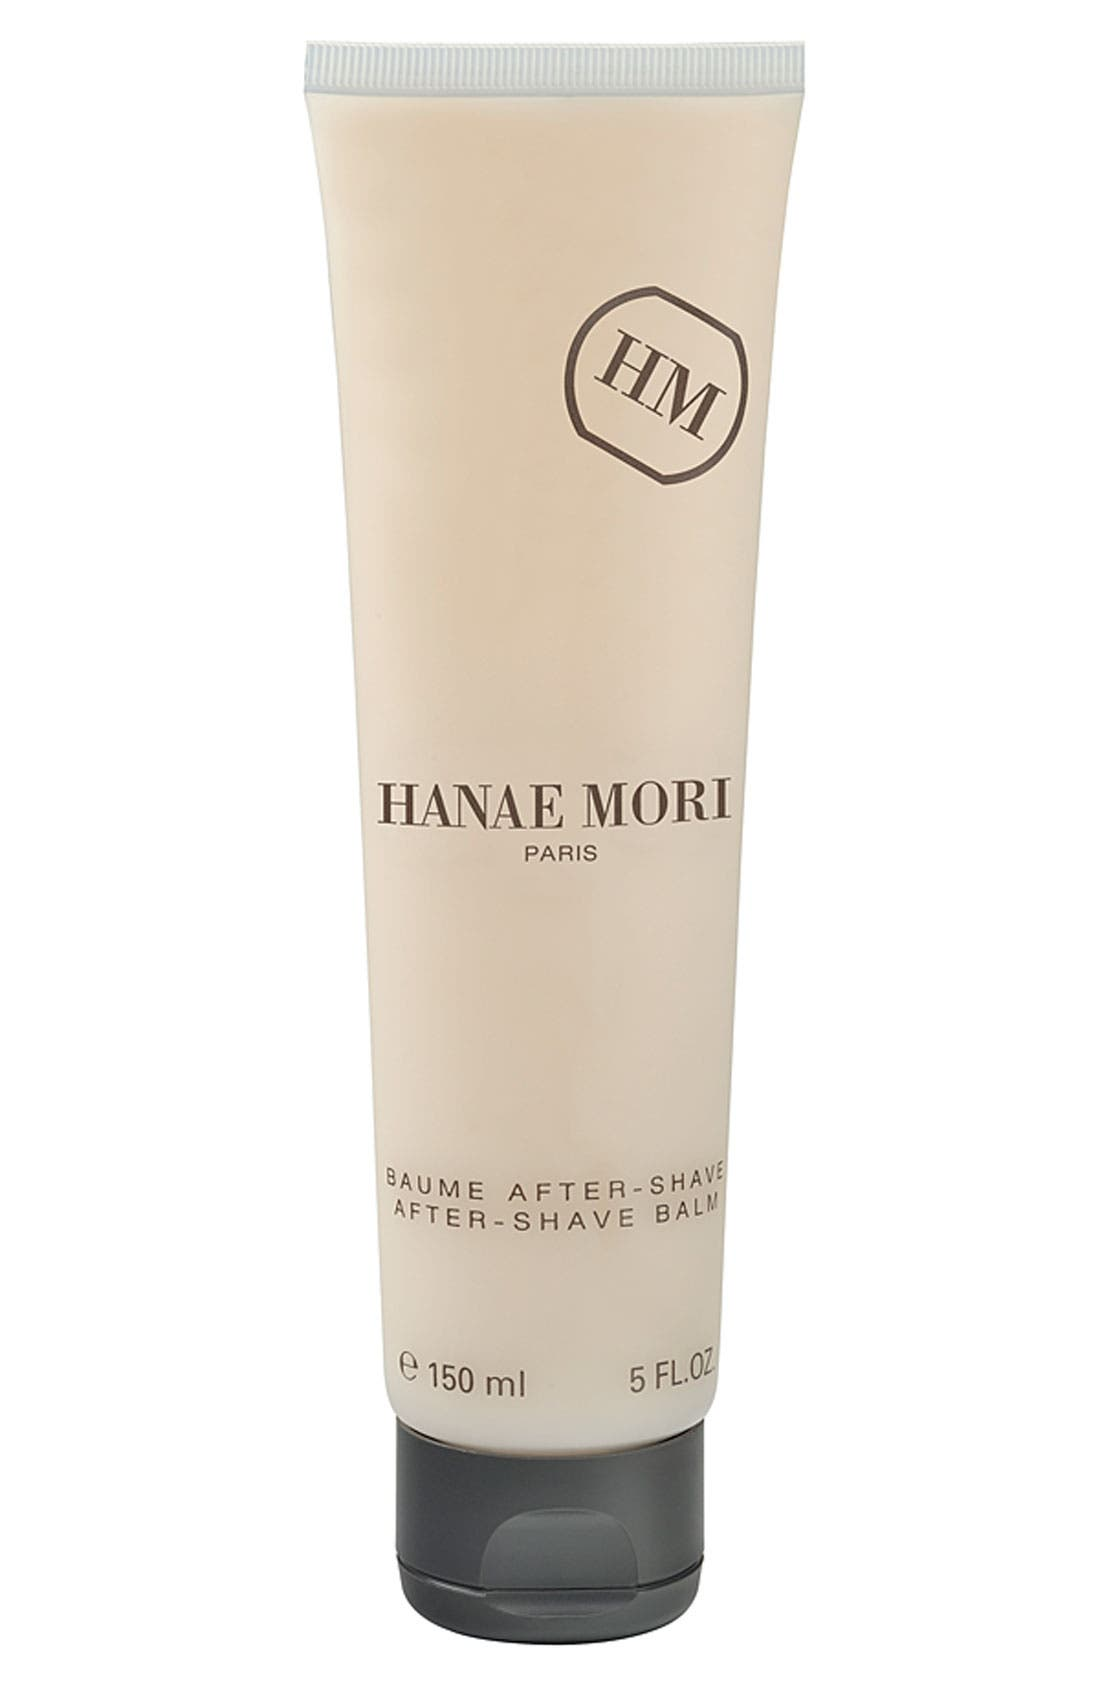 HM by Hanae Mori Men's After-Shave Balm